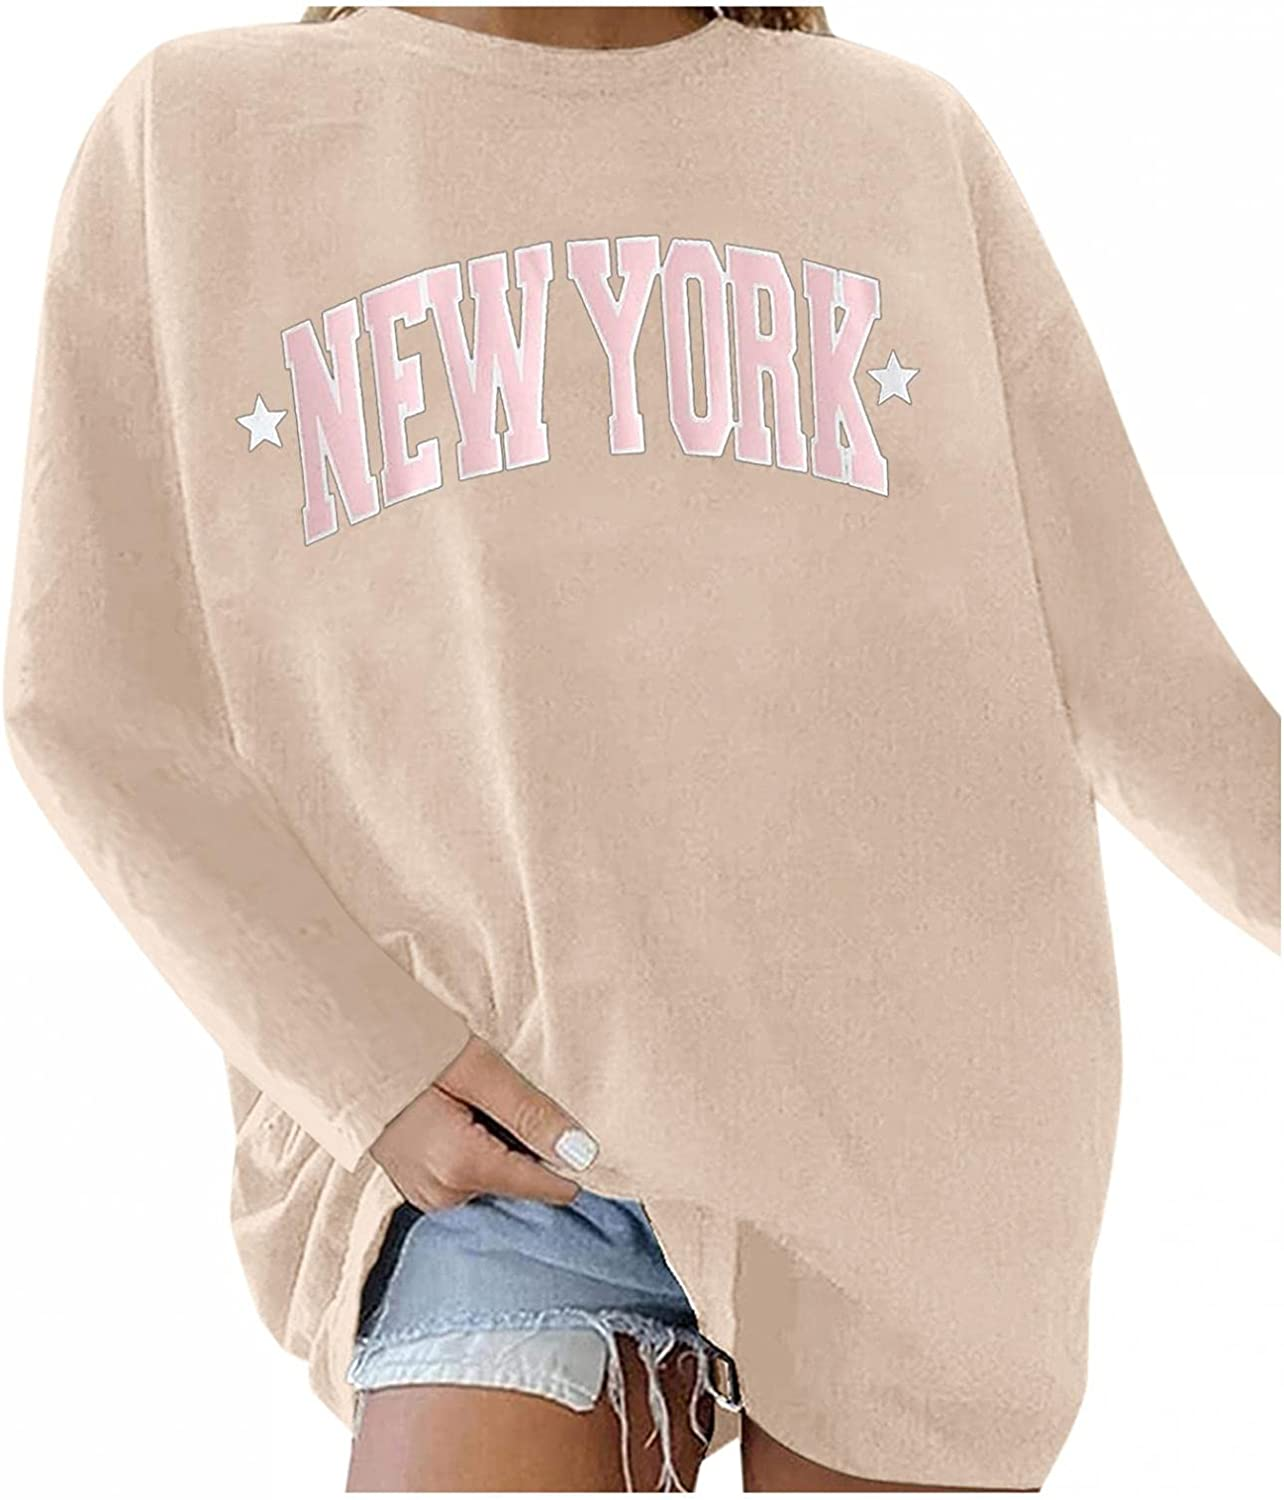 Qisemi New Max 42% OFF products world's highest quality popular Oversized Sweatshirt for Women York Printed Tops Crew